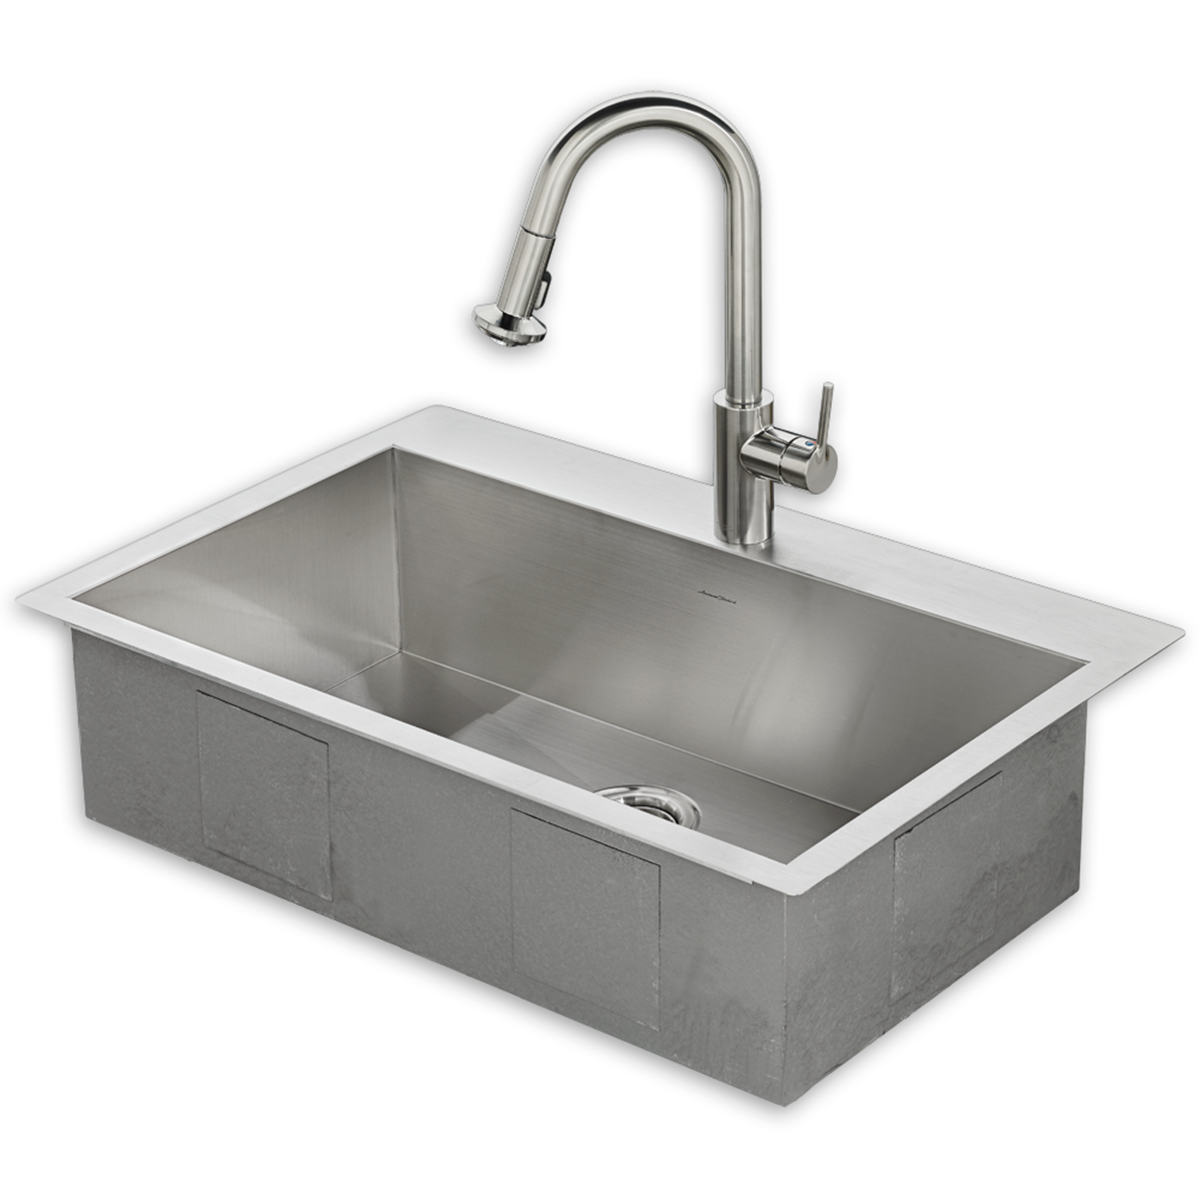 Memphis 33x22 Stainless Steel Kitchen Sink Kit With Faucet